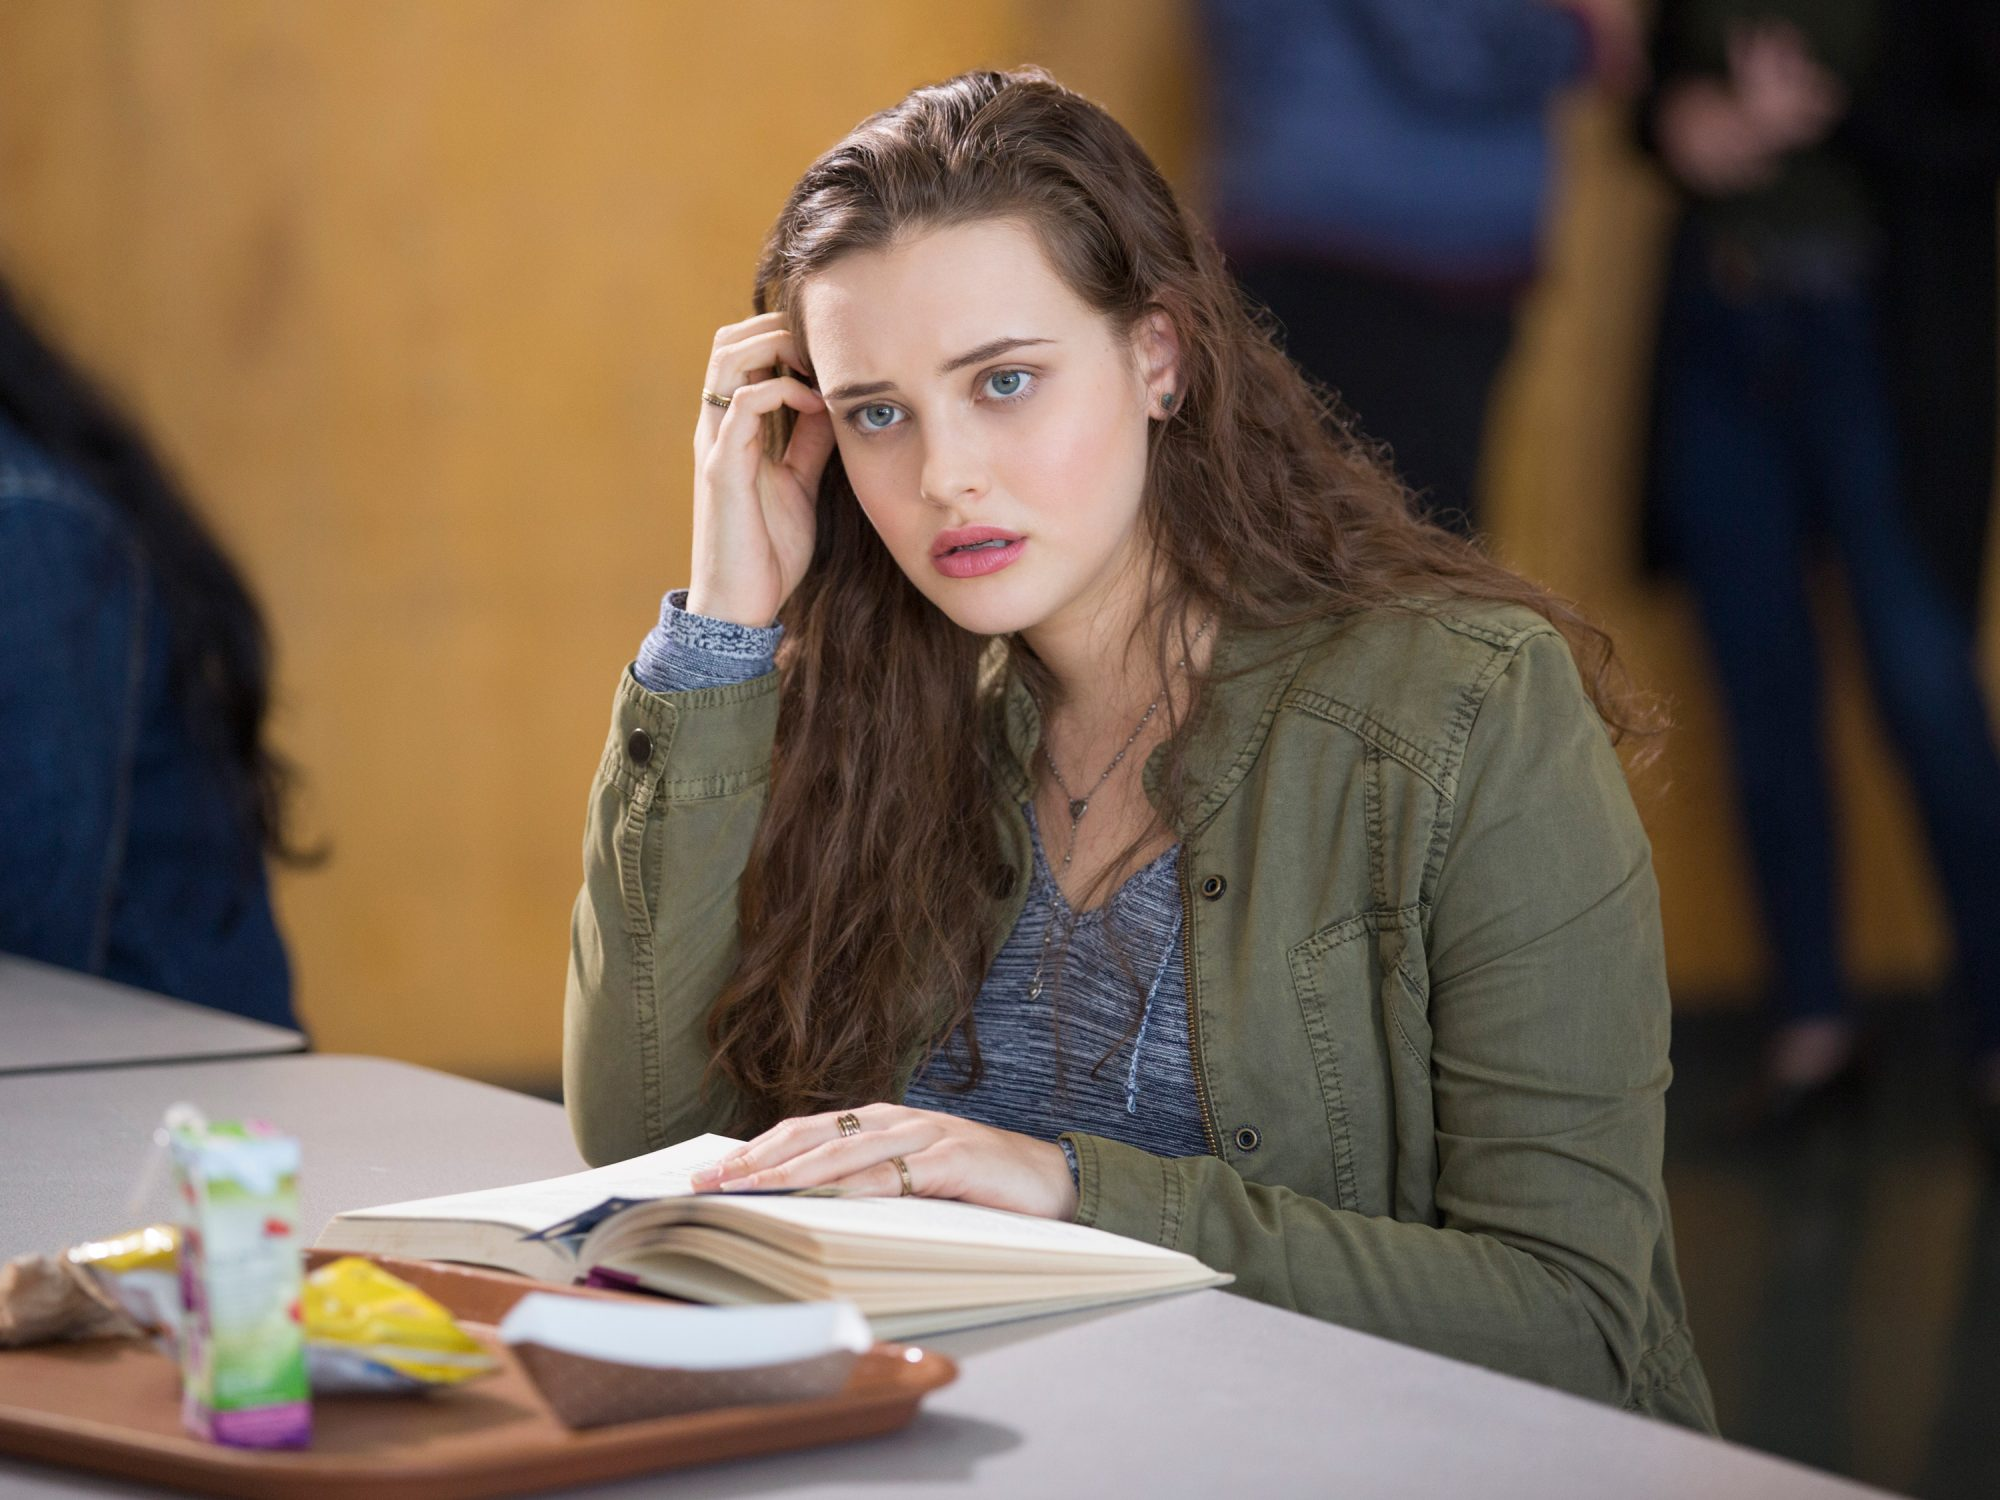 Prepare for a Very Different Hannah in <em>13 Reasons Why</em>'s Second Season